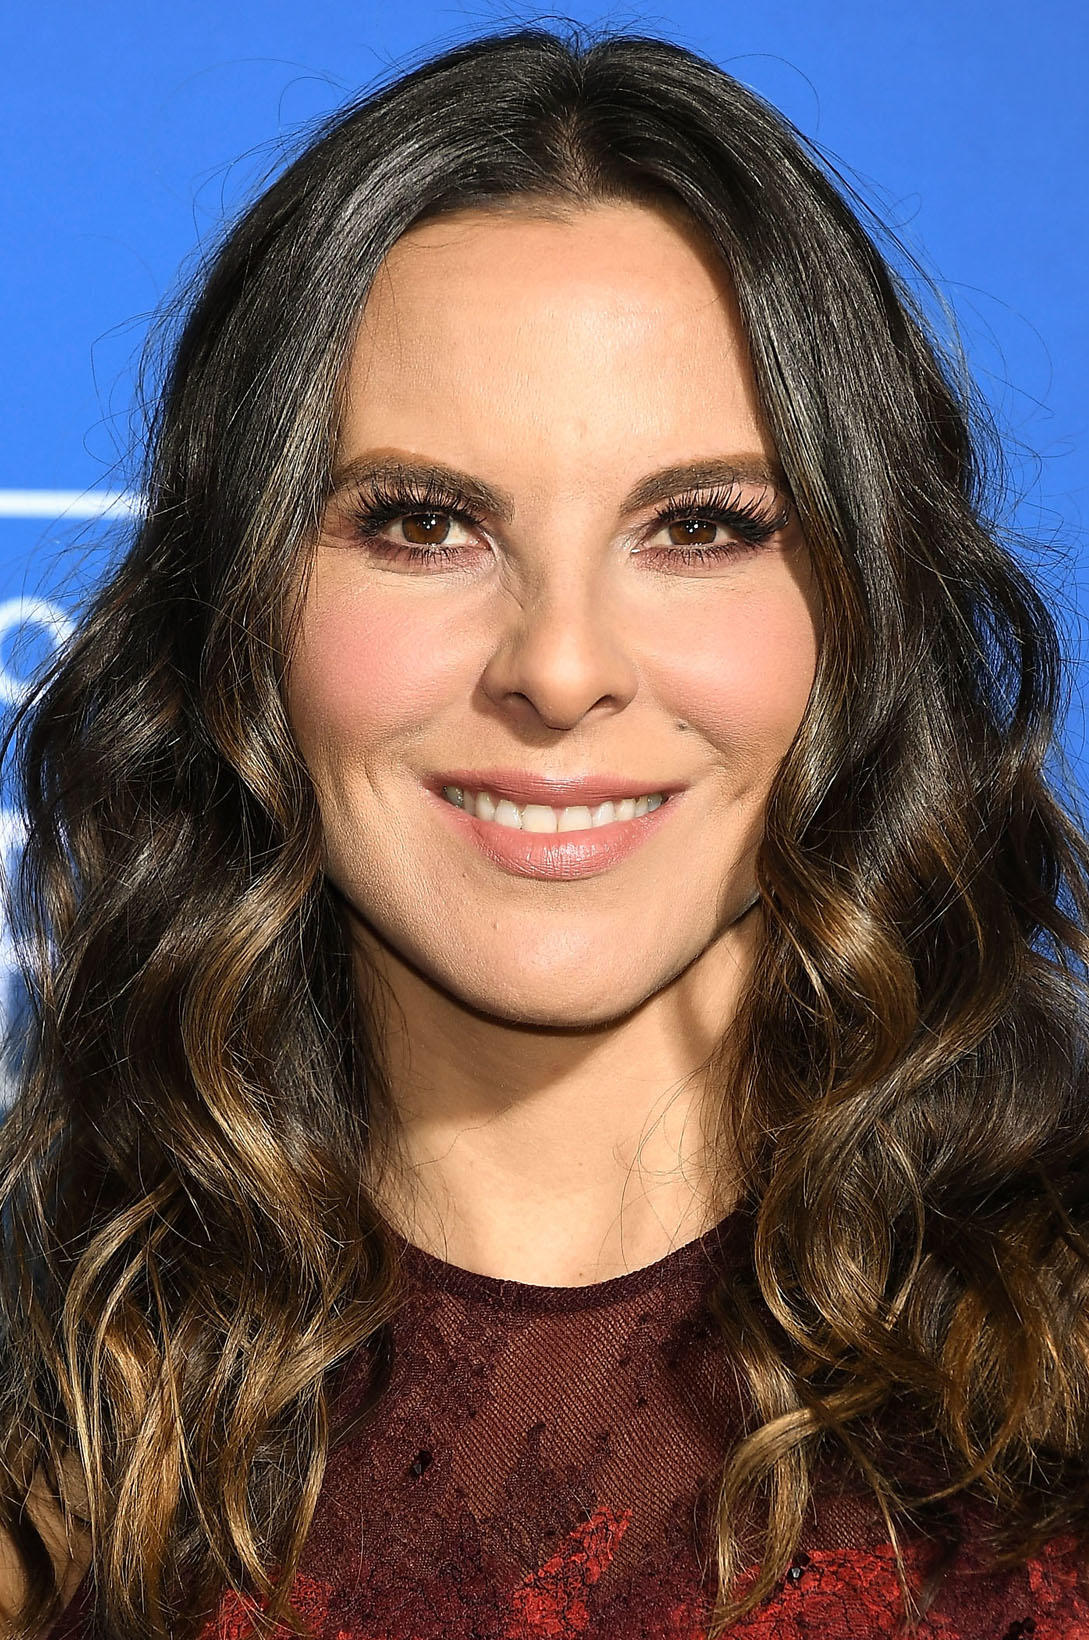 Kate del Castillo at the 2017 NBCUniversal Upfront in New York City.